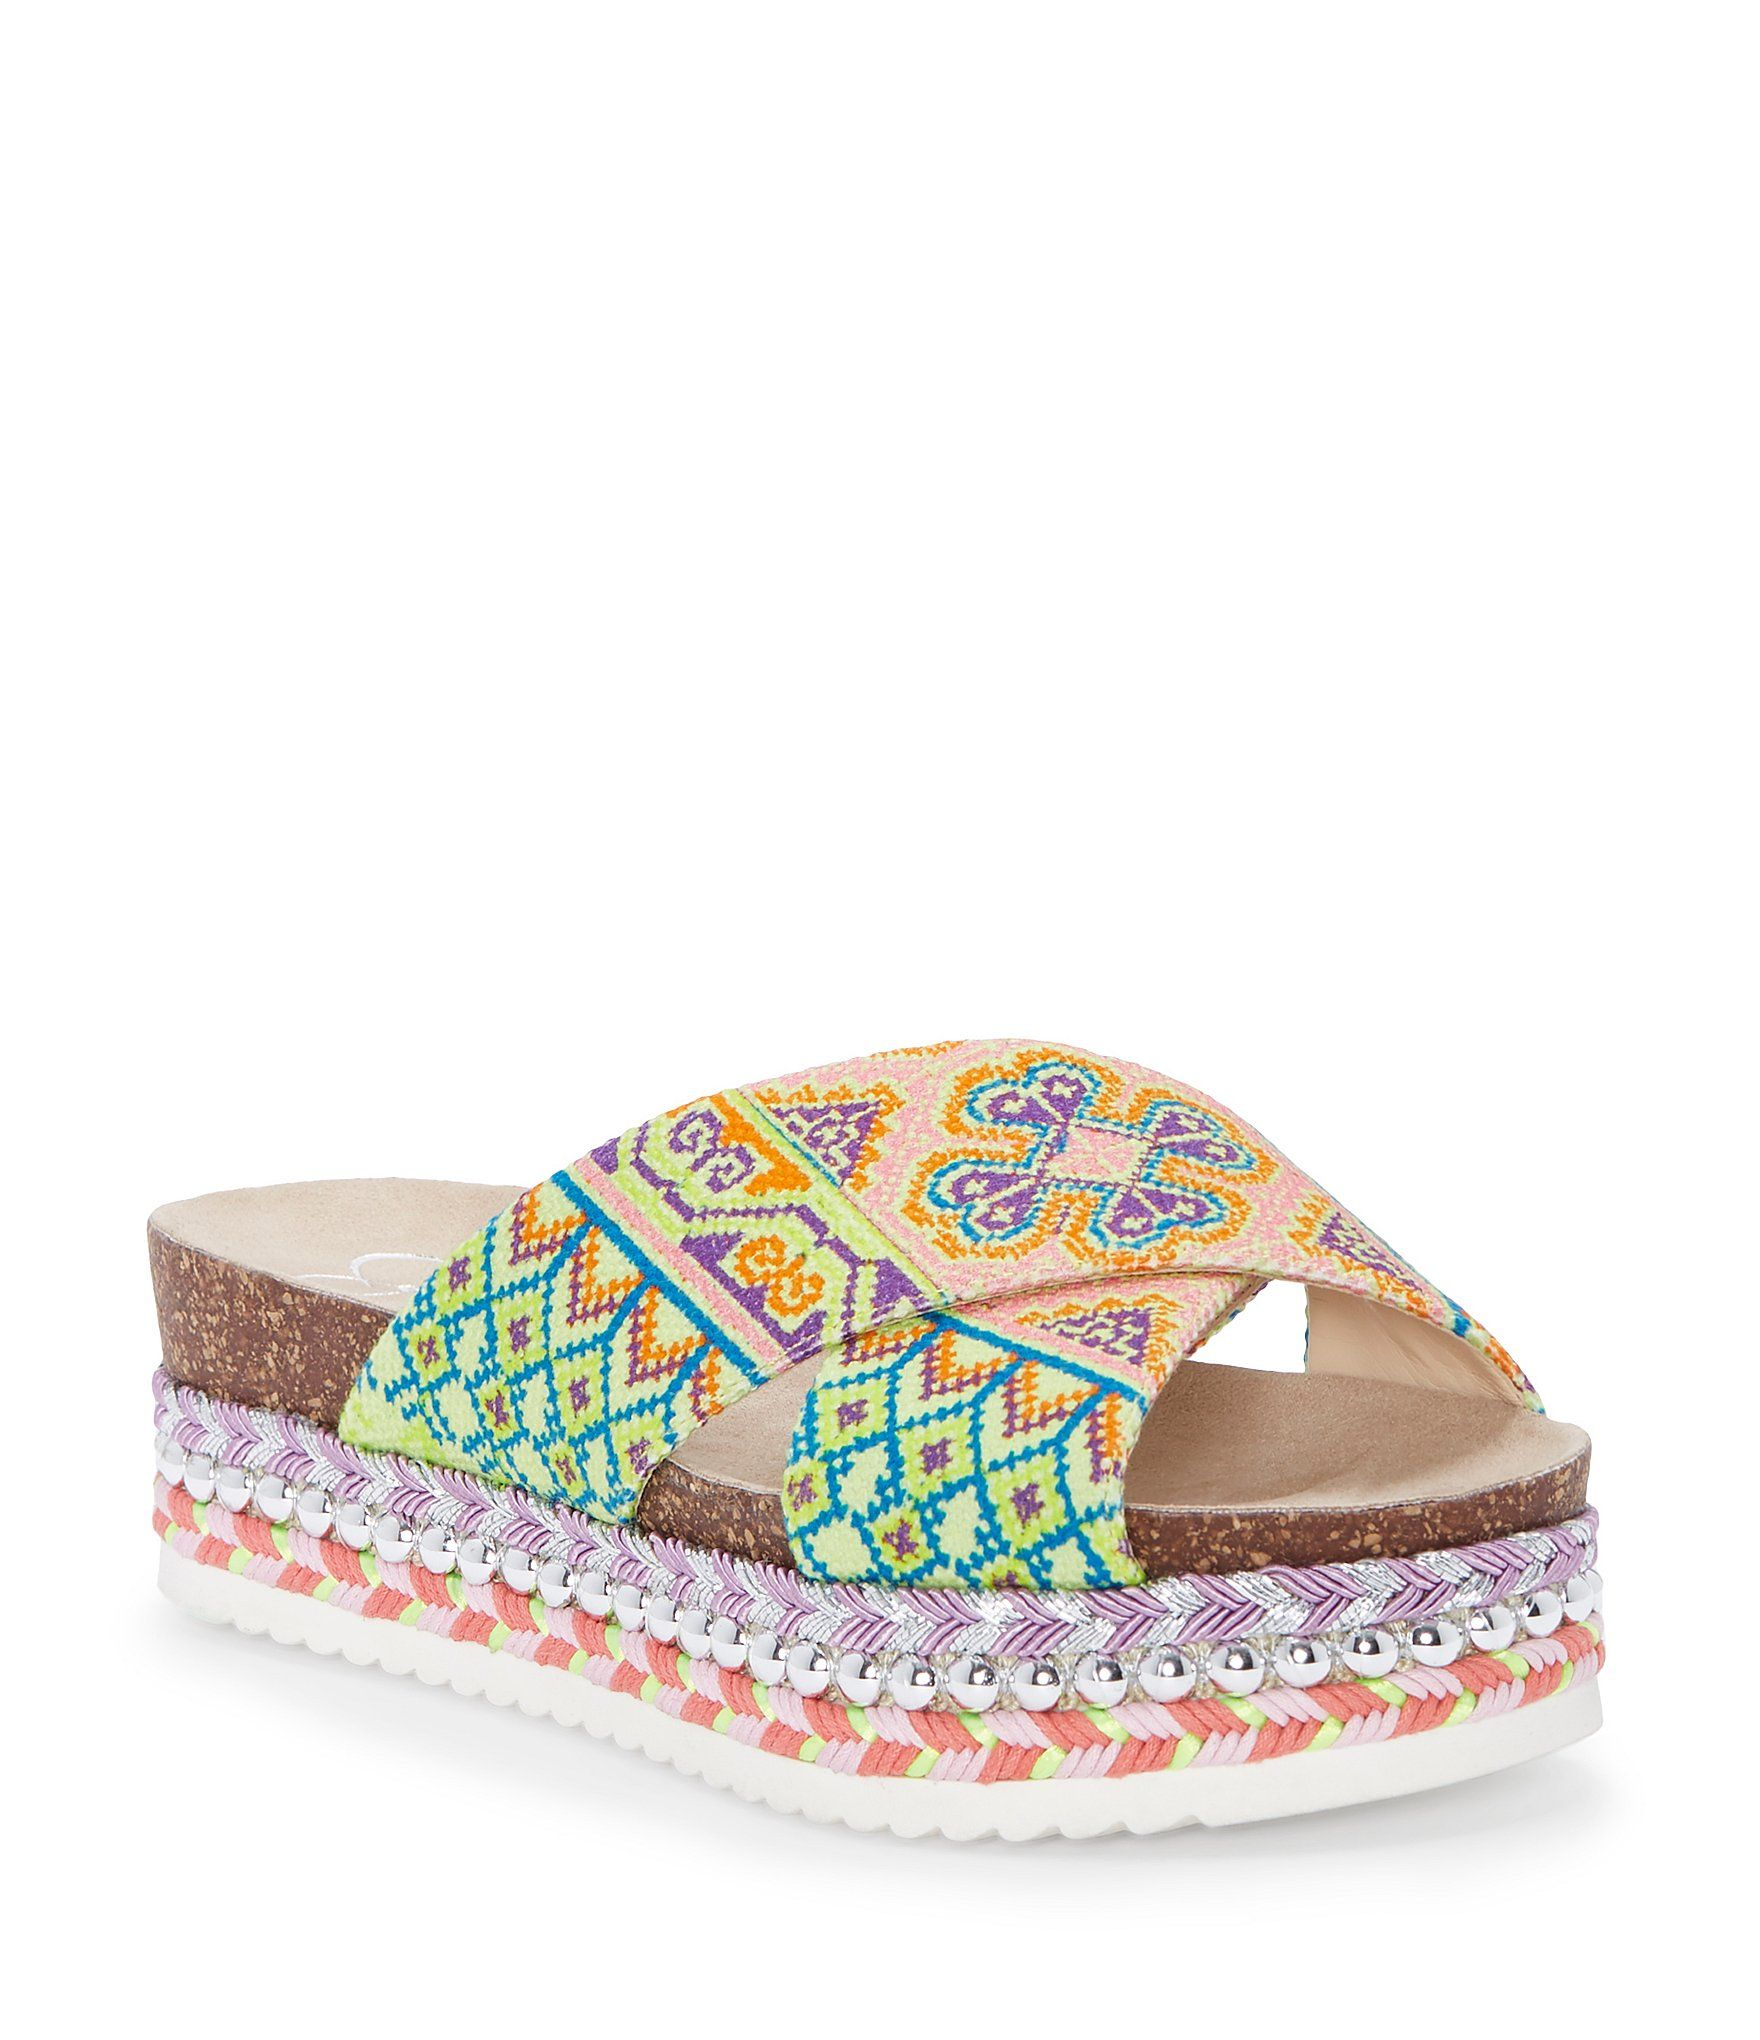 Jessica Simpson Shanny Cross Band Espadrille Slides 1rtAR